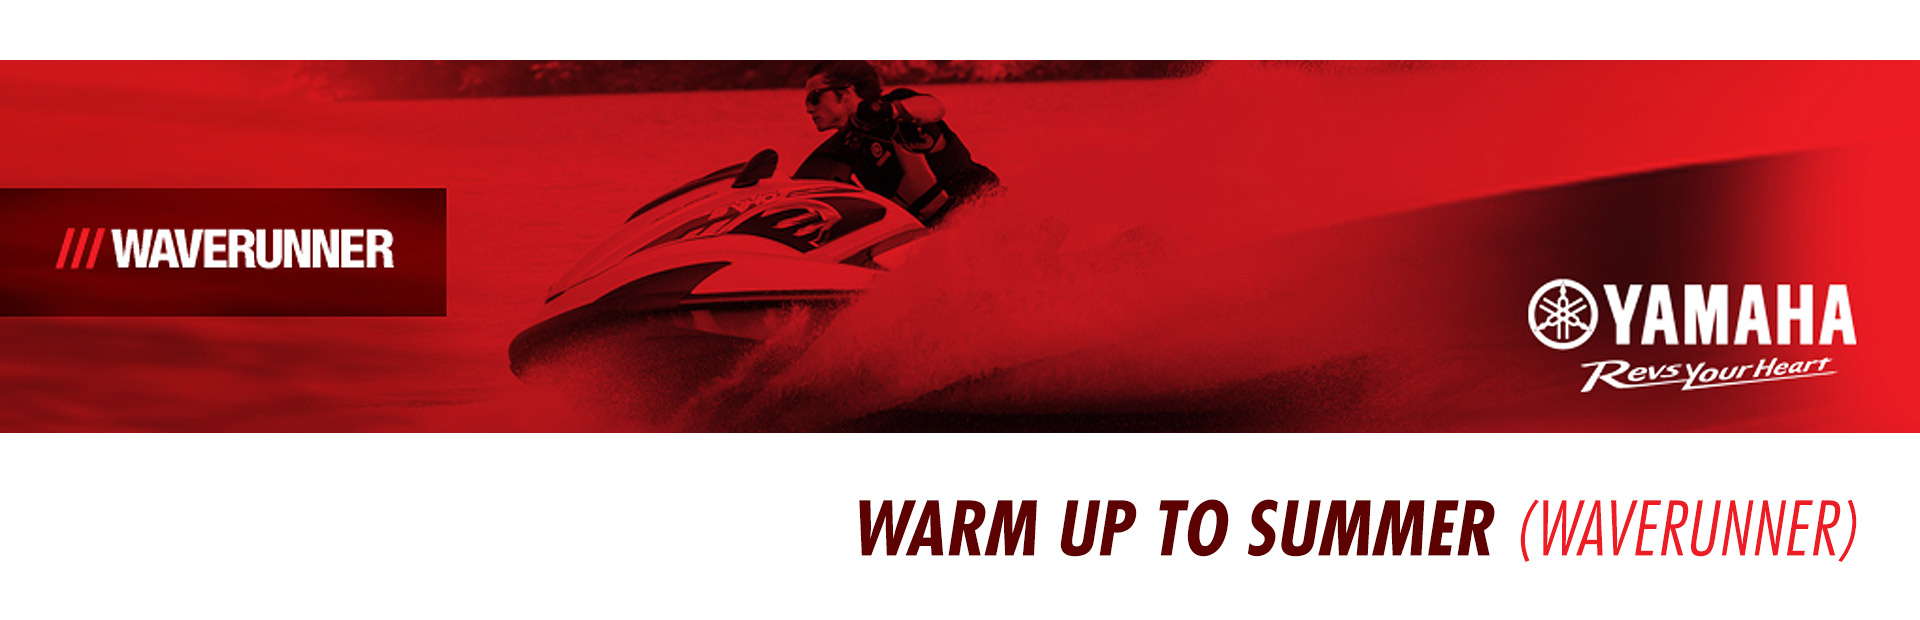 Yamaha: Warm Up To Summer (Waverunner)